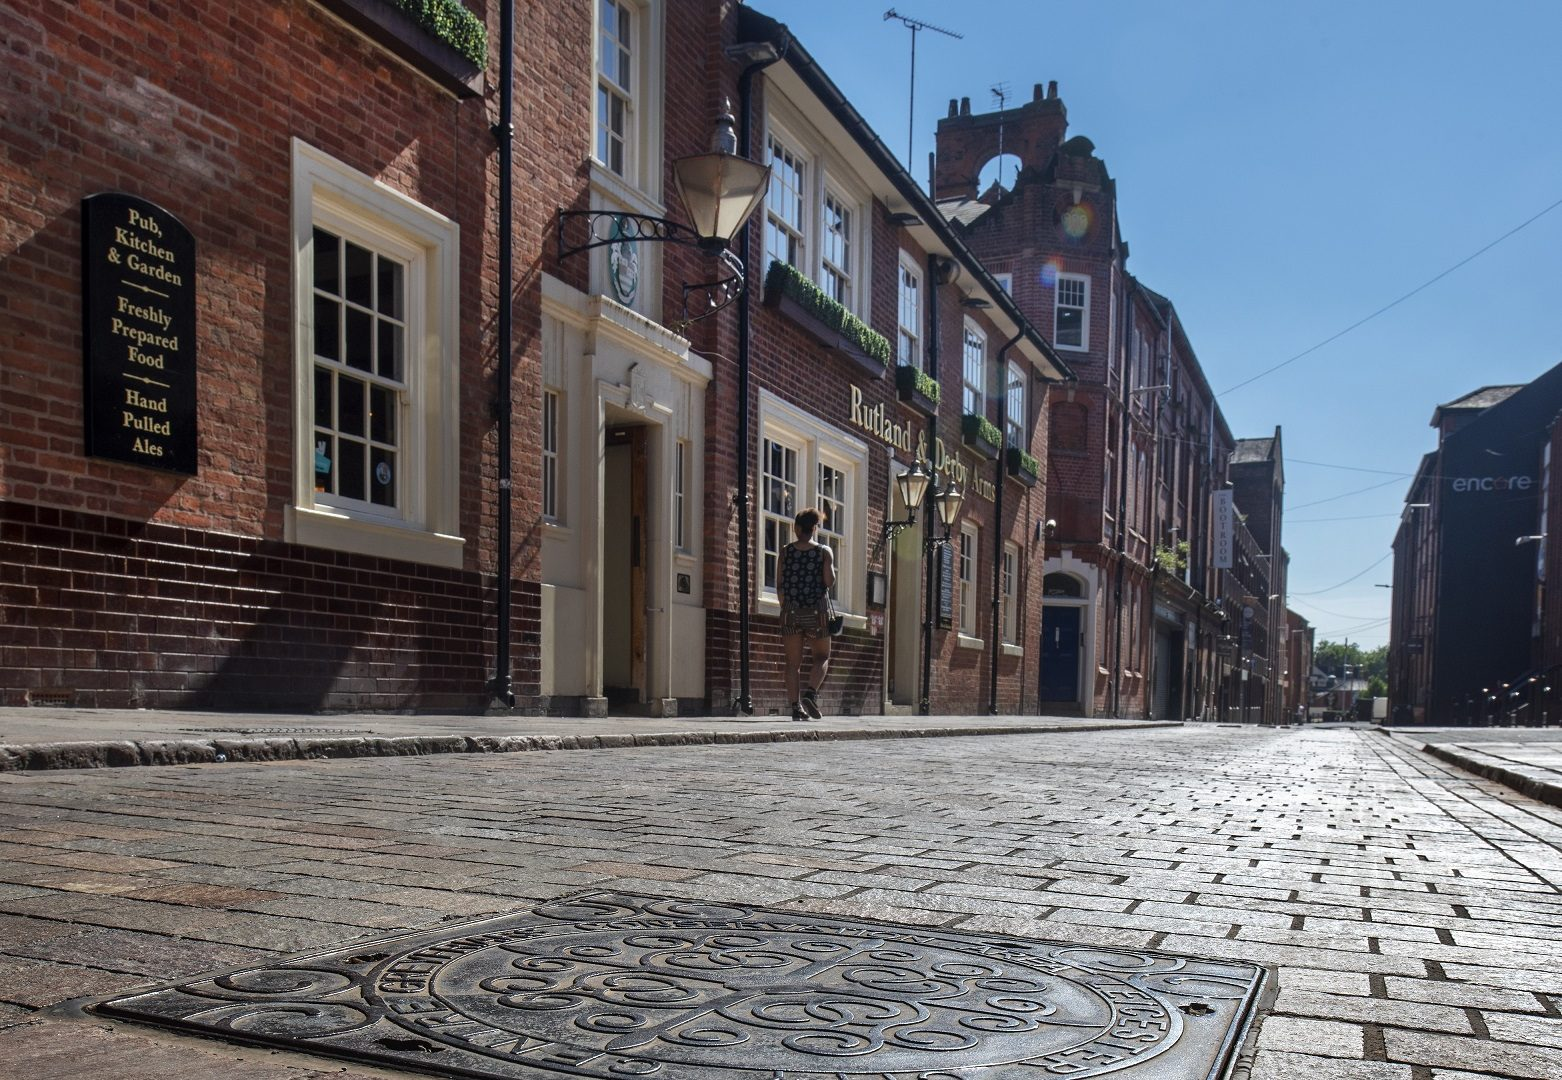 Greyfriars Townscape Heritage Initiative